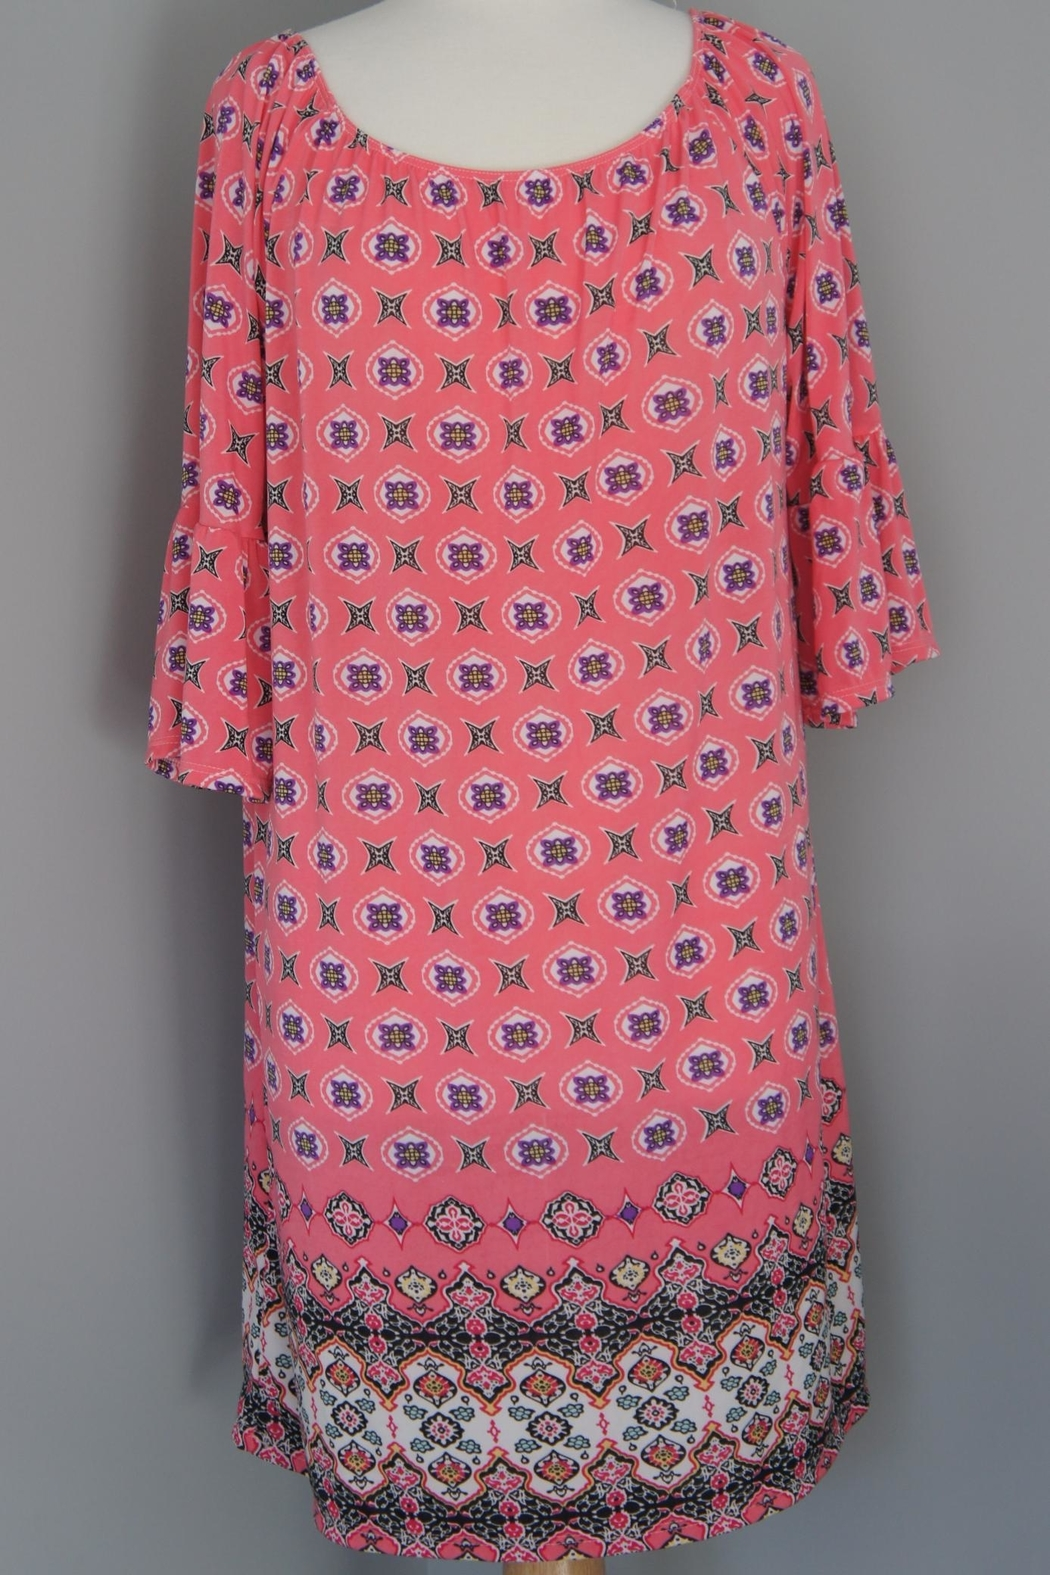 Auditions Eclectic Print Tunic - Main Image